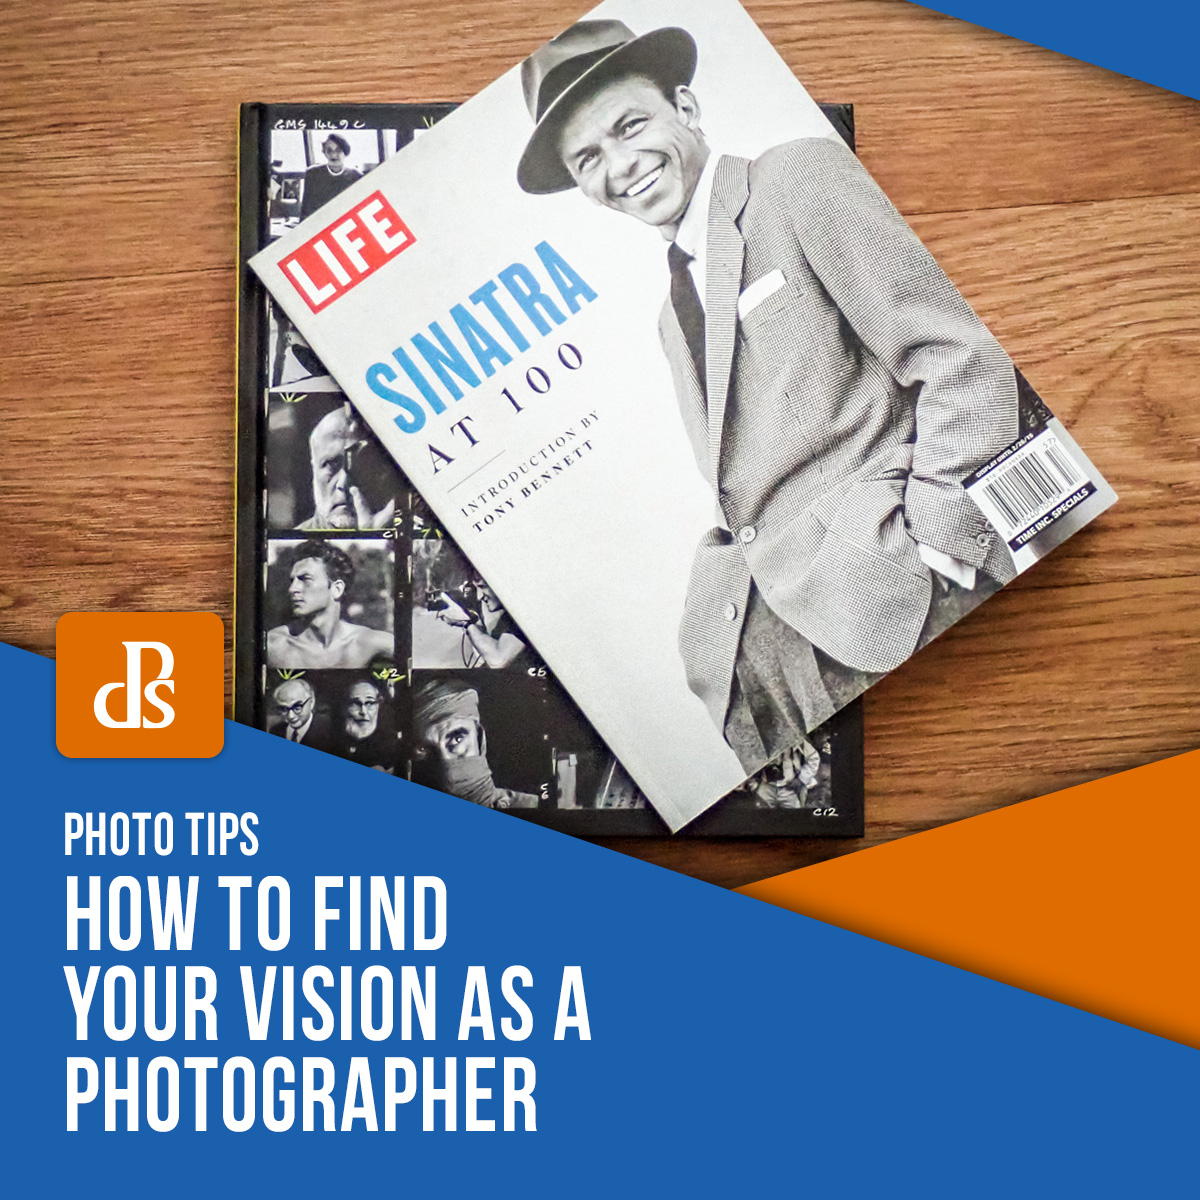 find-your-vision-as-a-photographer